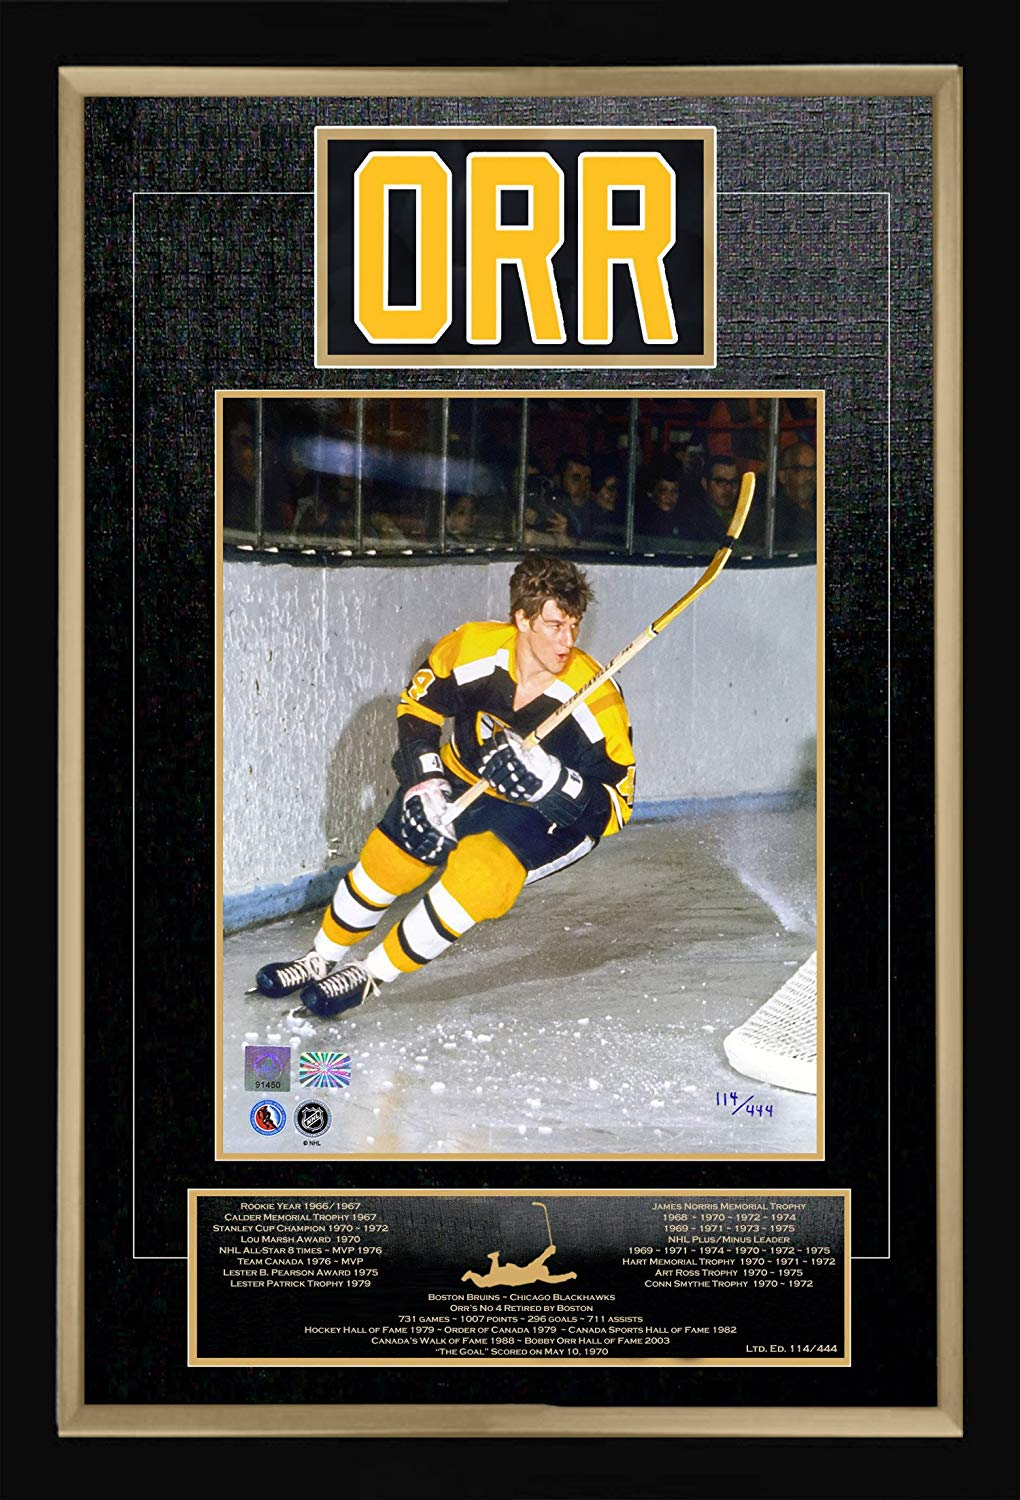 ed6013bd8 Get Quotations · Autograph Authentic AACMH31258 Museum Framed Bobby Orr  Career Collectible Namebar - Ltd Edition of 444